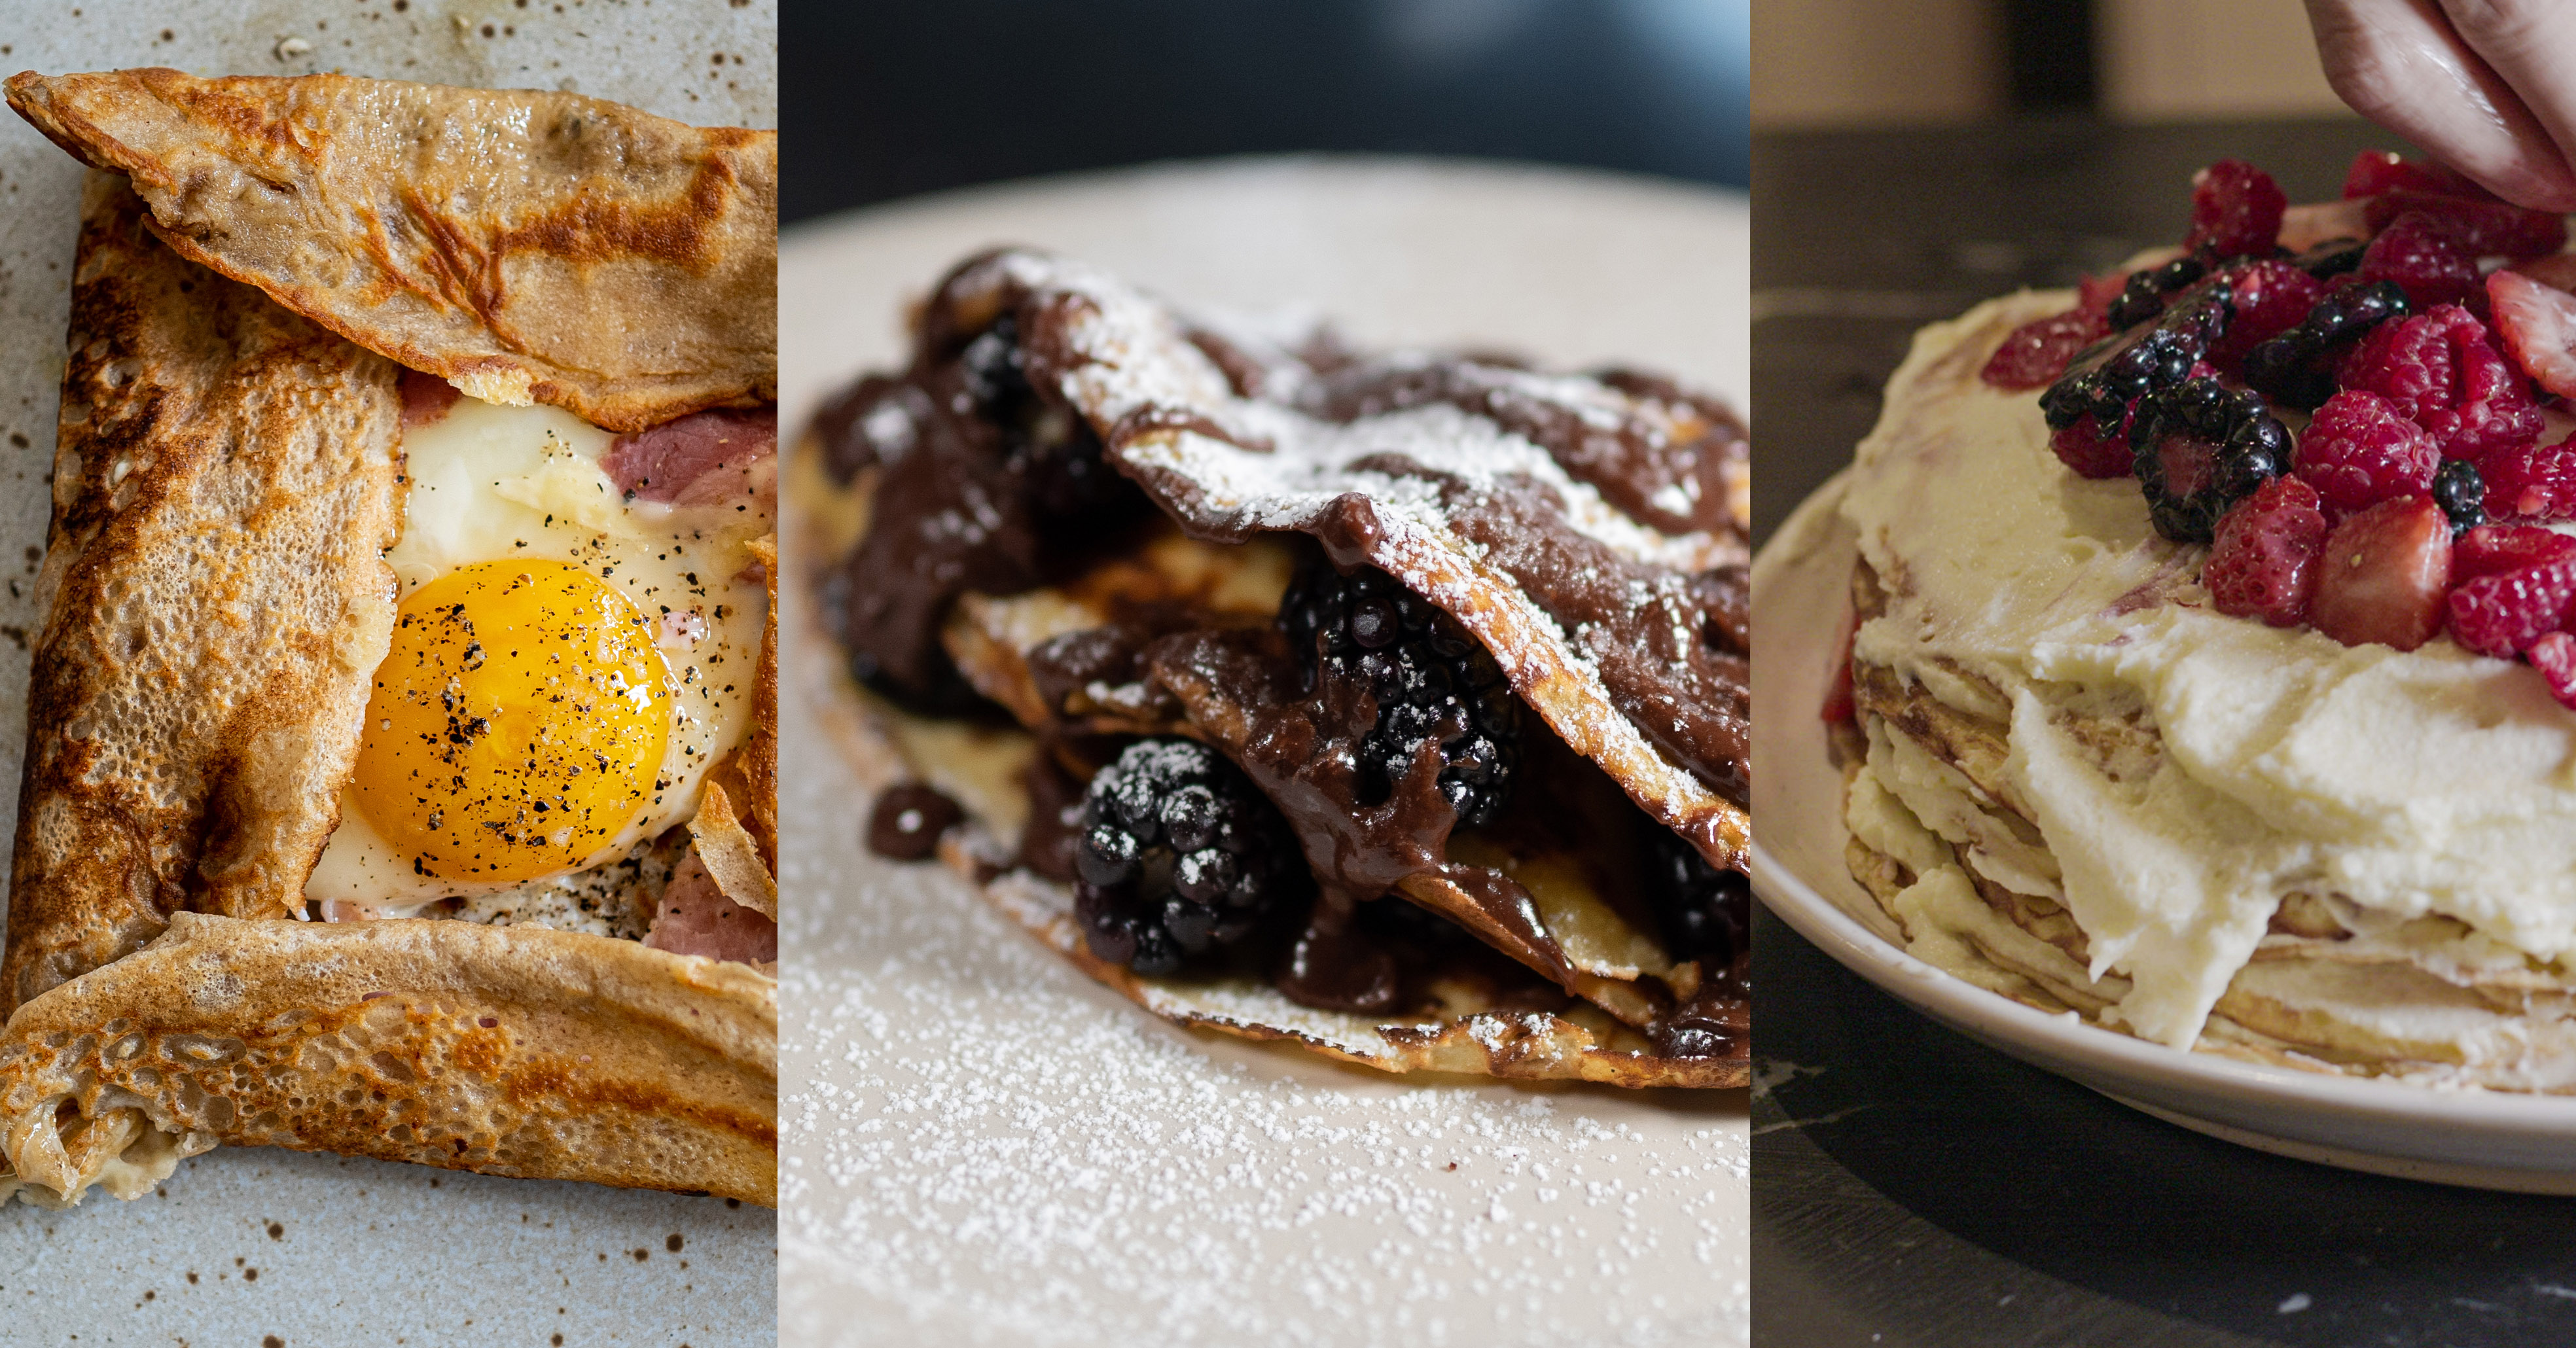 Easy Sweet And Savory Crepe Recipes The Fat Kid Inside